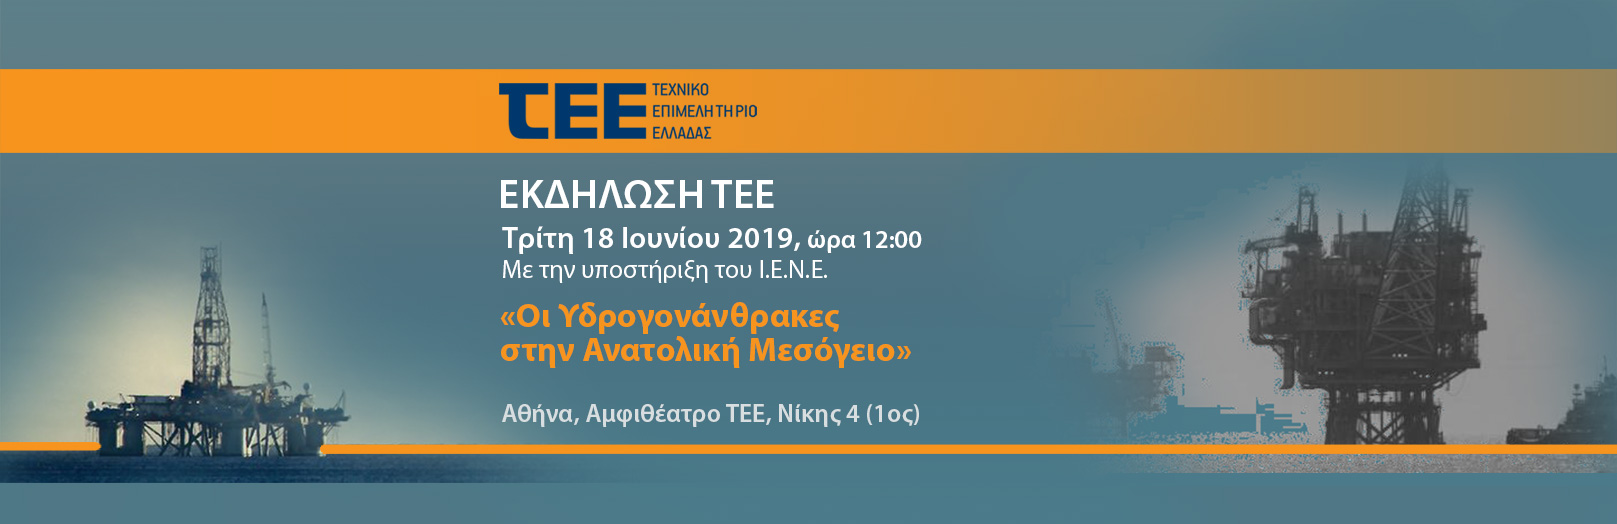 Greece's hydrocarbon exploration progress reviewed in joint event by the Technical Chamber of Greece and IENE